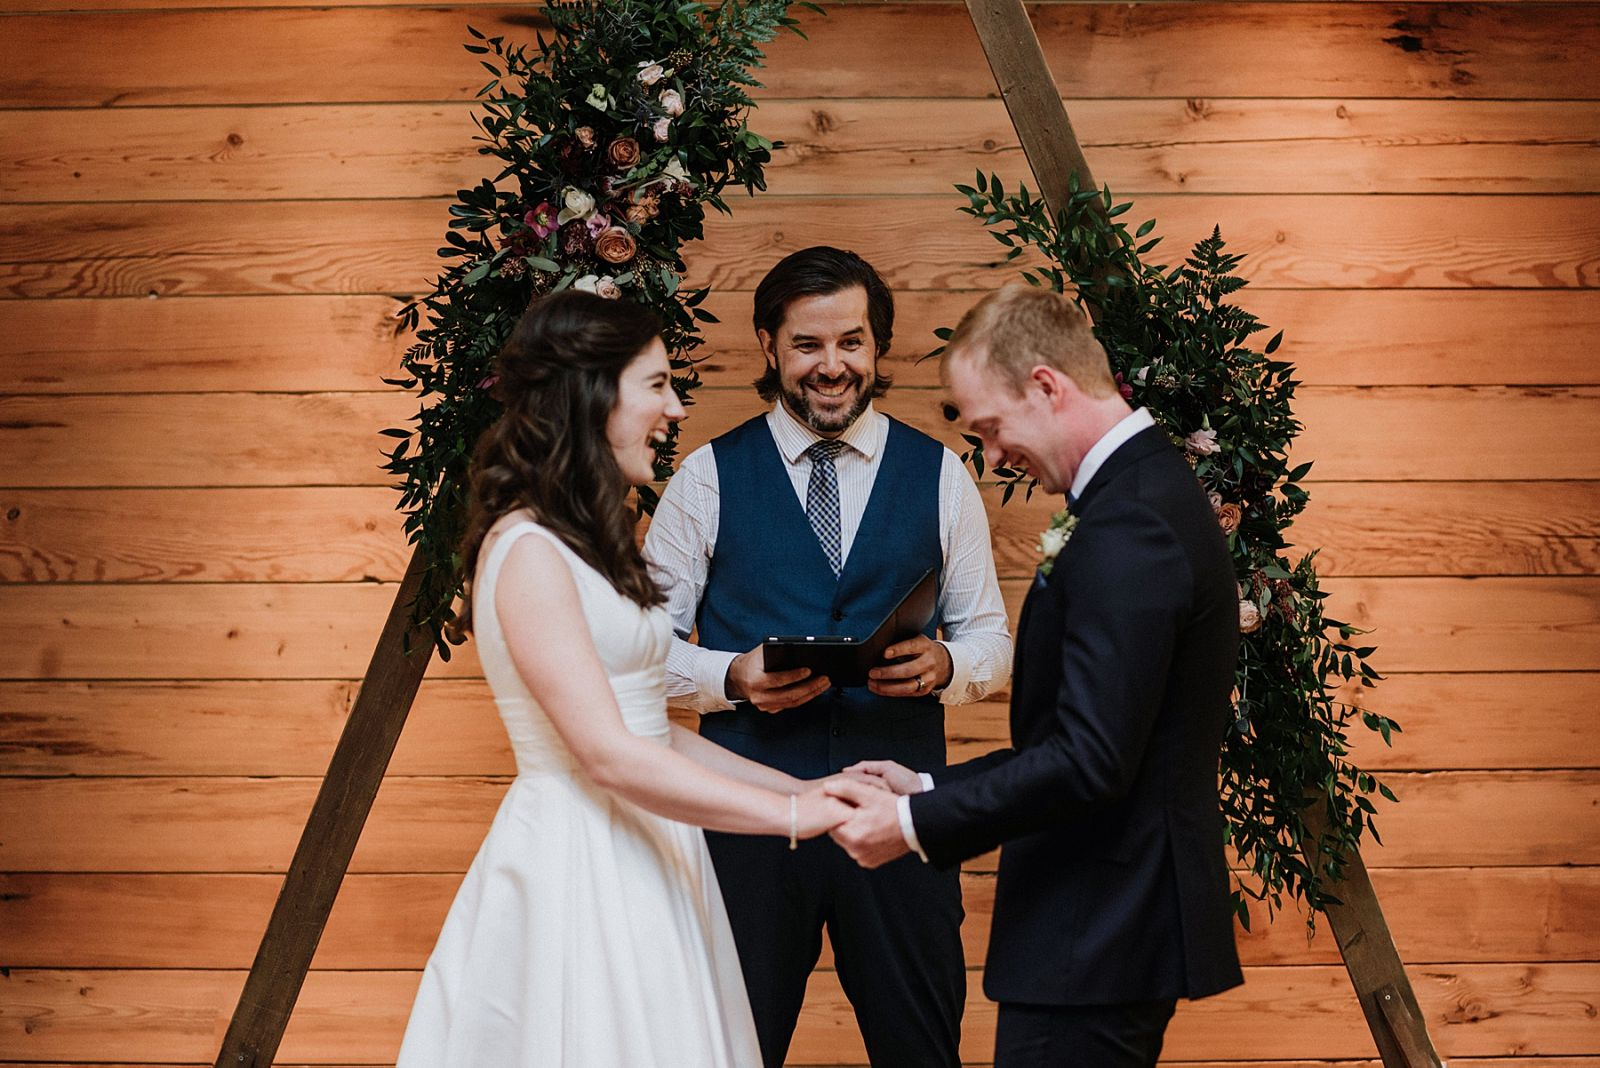 whistler officiant performing ceremony at brew creek center